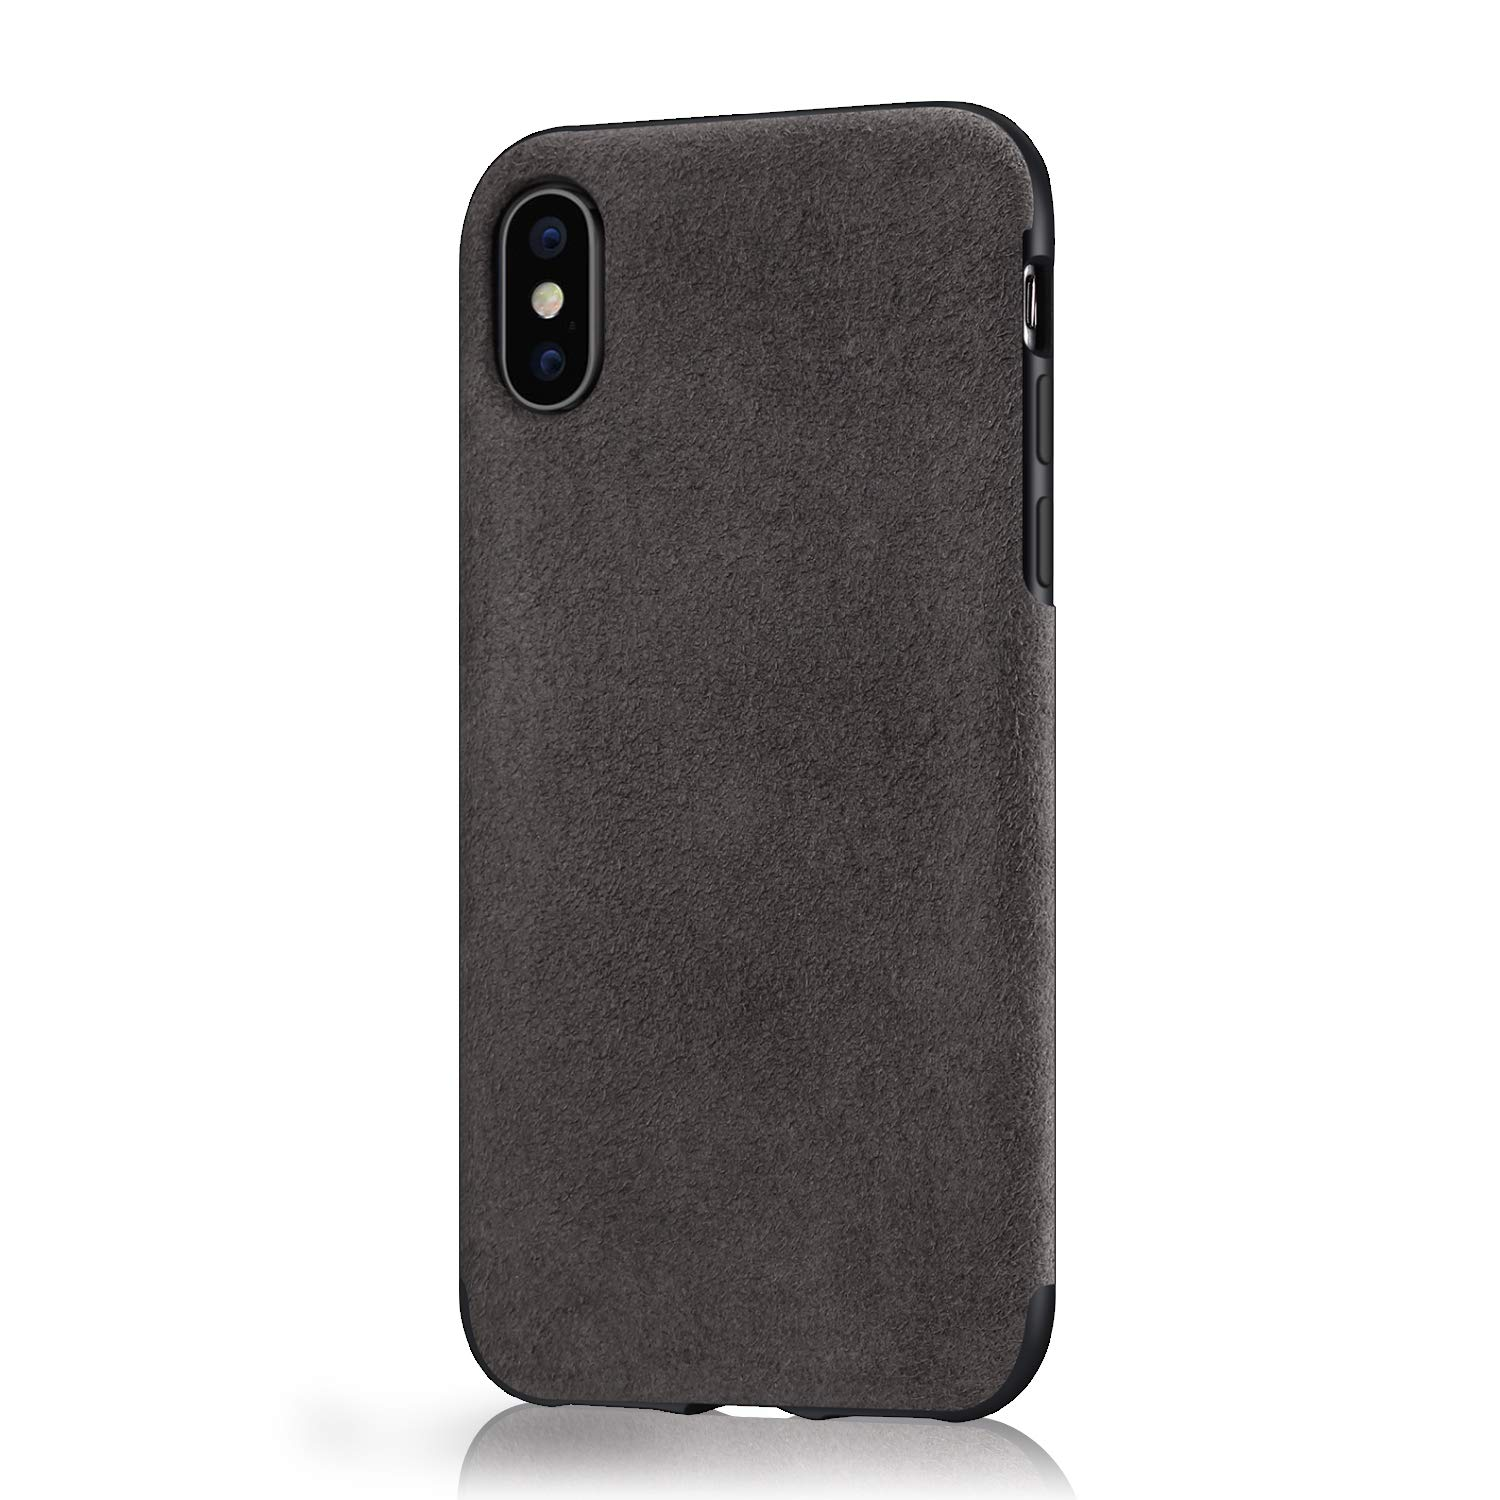 separation shoes 1e743 776c8 Mthinkor Compatible with iPhone Xs Case, iPhone X Case Luxury Slim Case  Made of Alcantara Material (Gray)